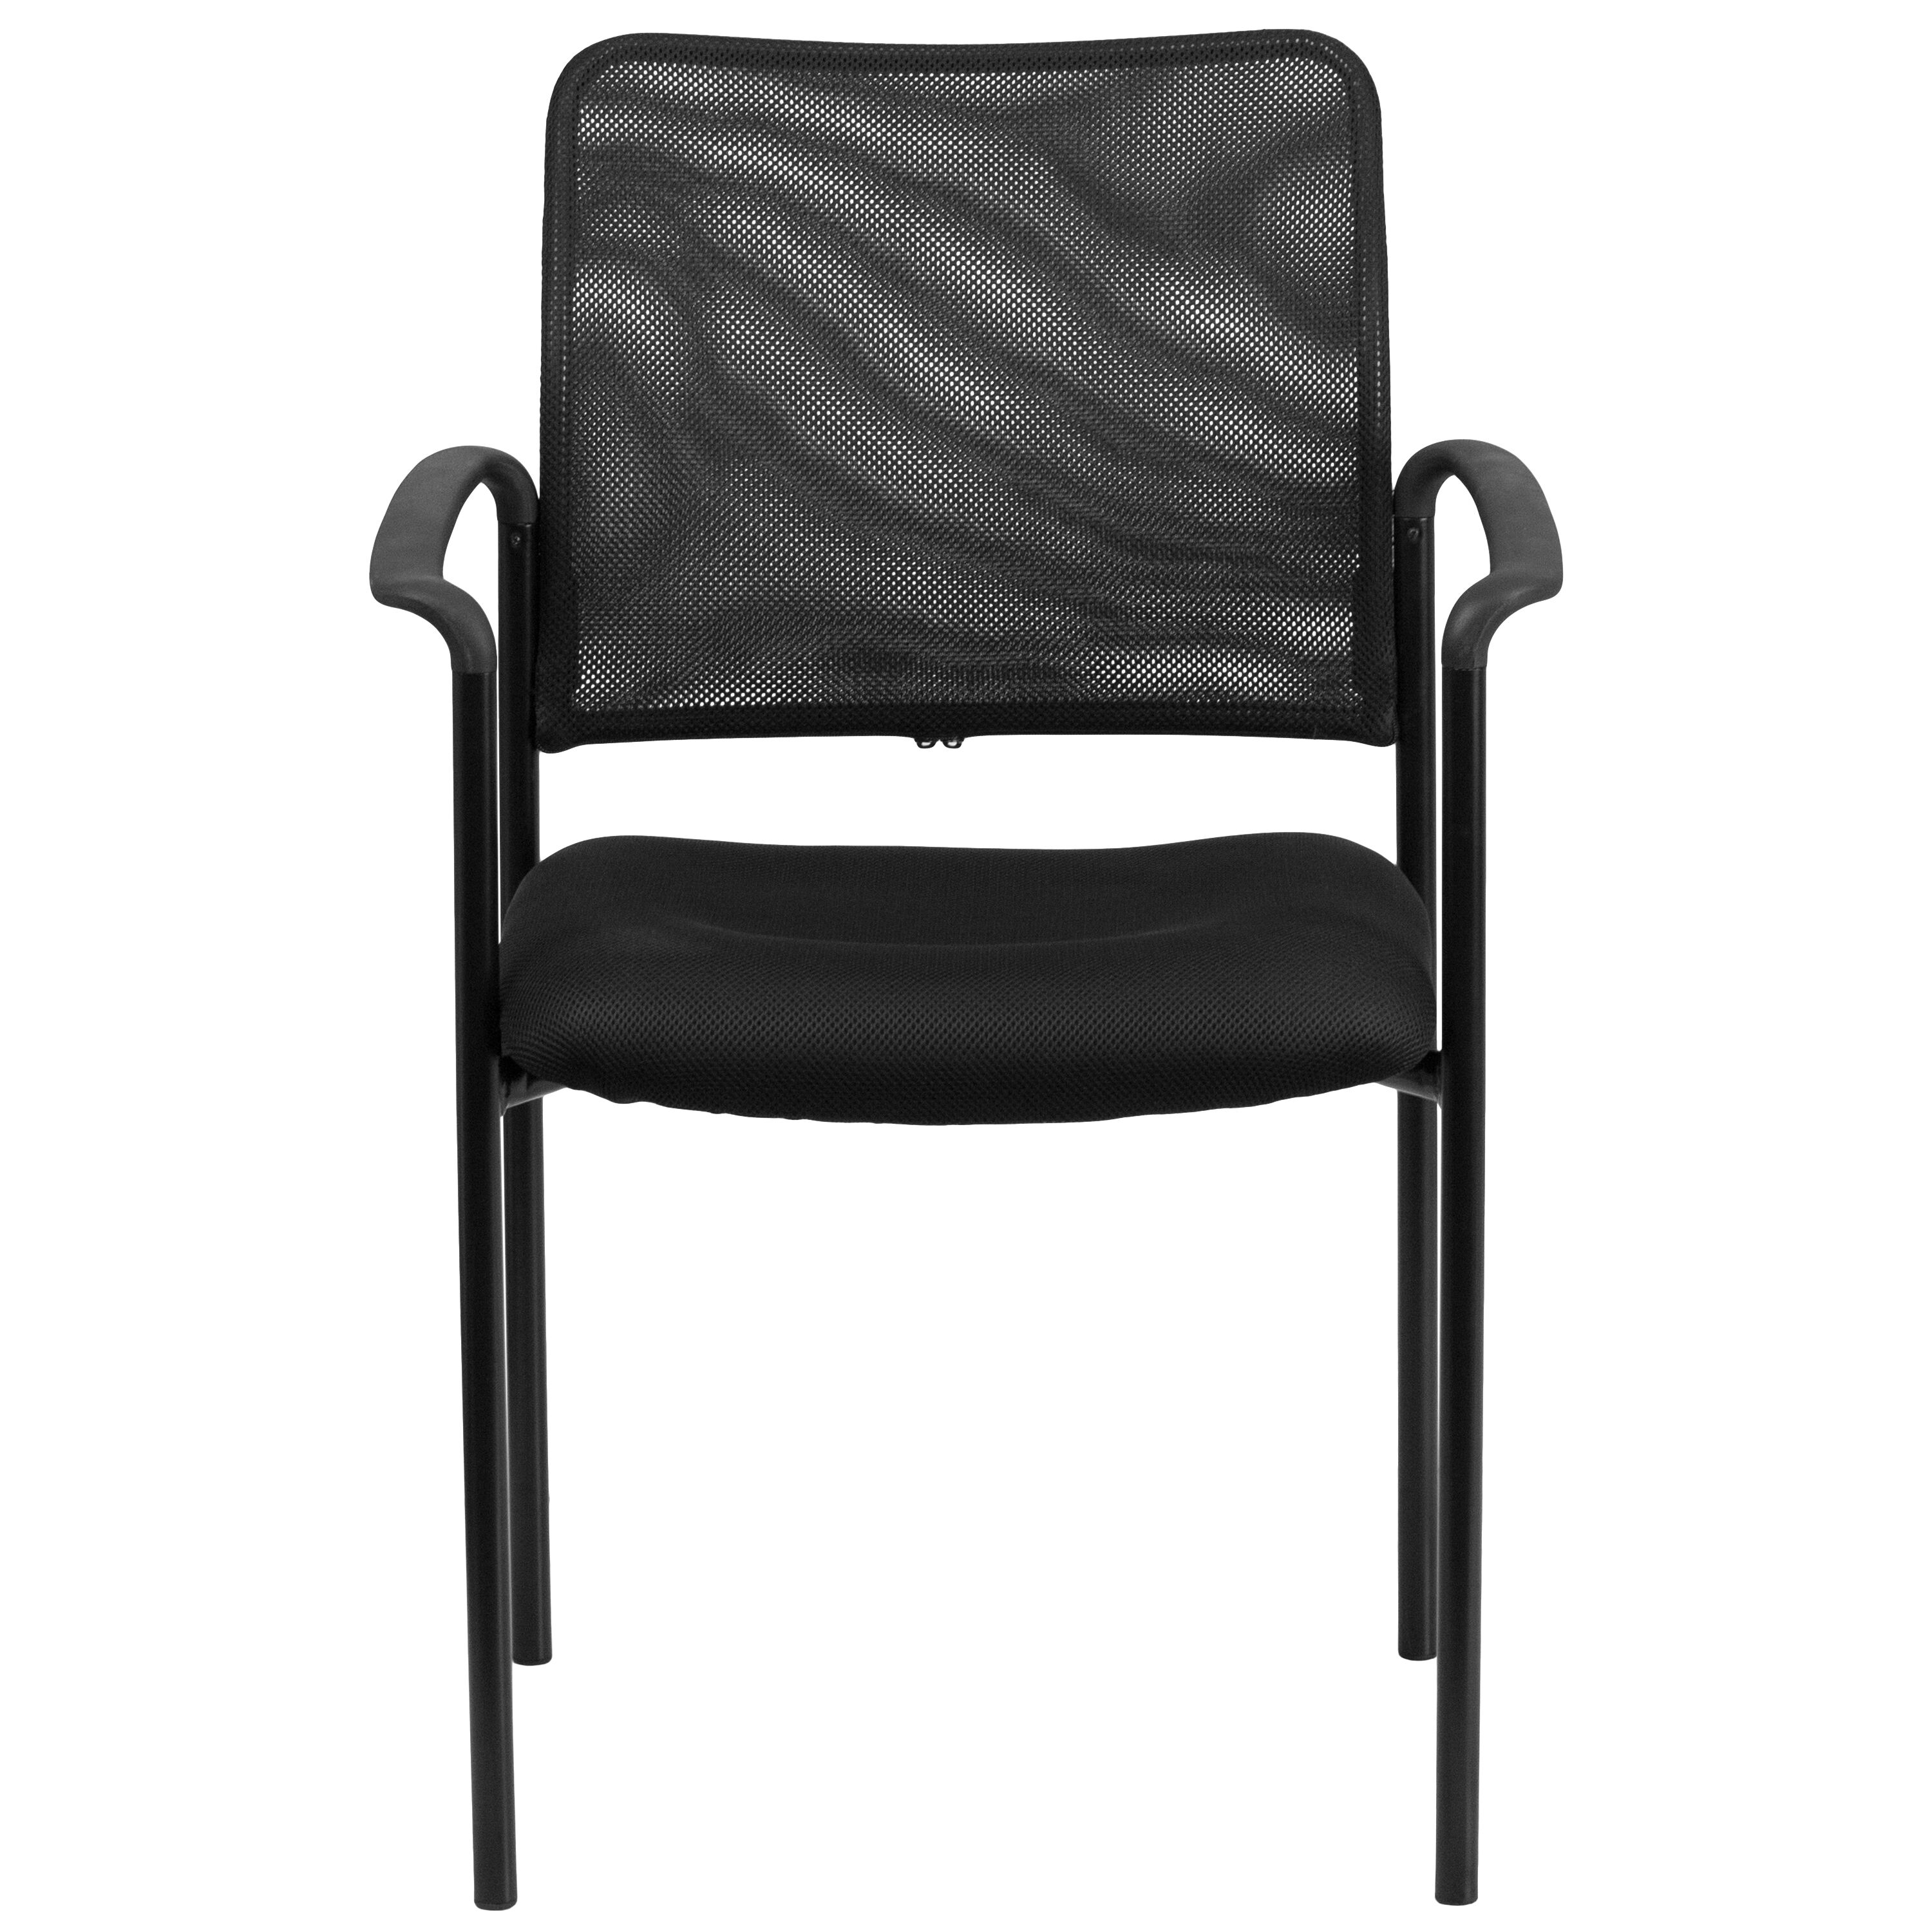 stackable chairs for less the amazing pocket chair black mesh side w arms go 516 2 gg